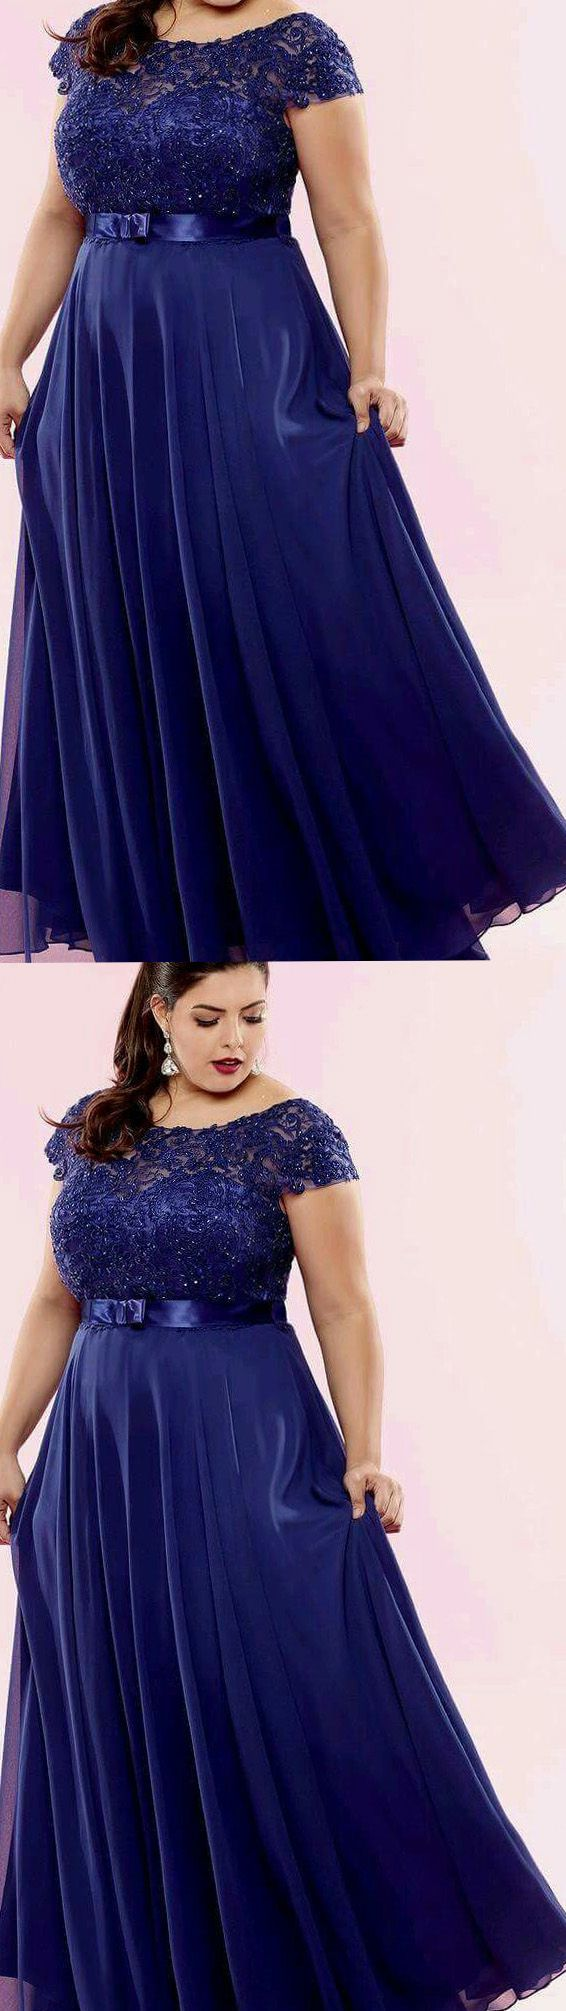 Short prom dresses long sleeve prom dresses blue prom dresses